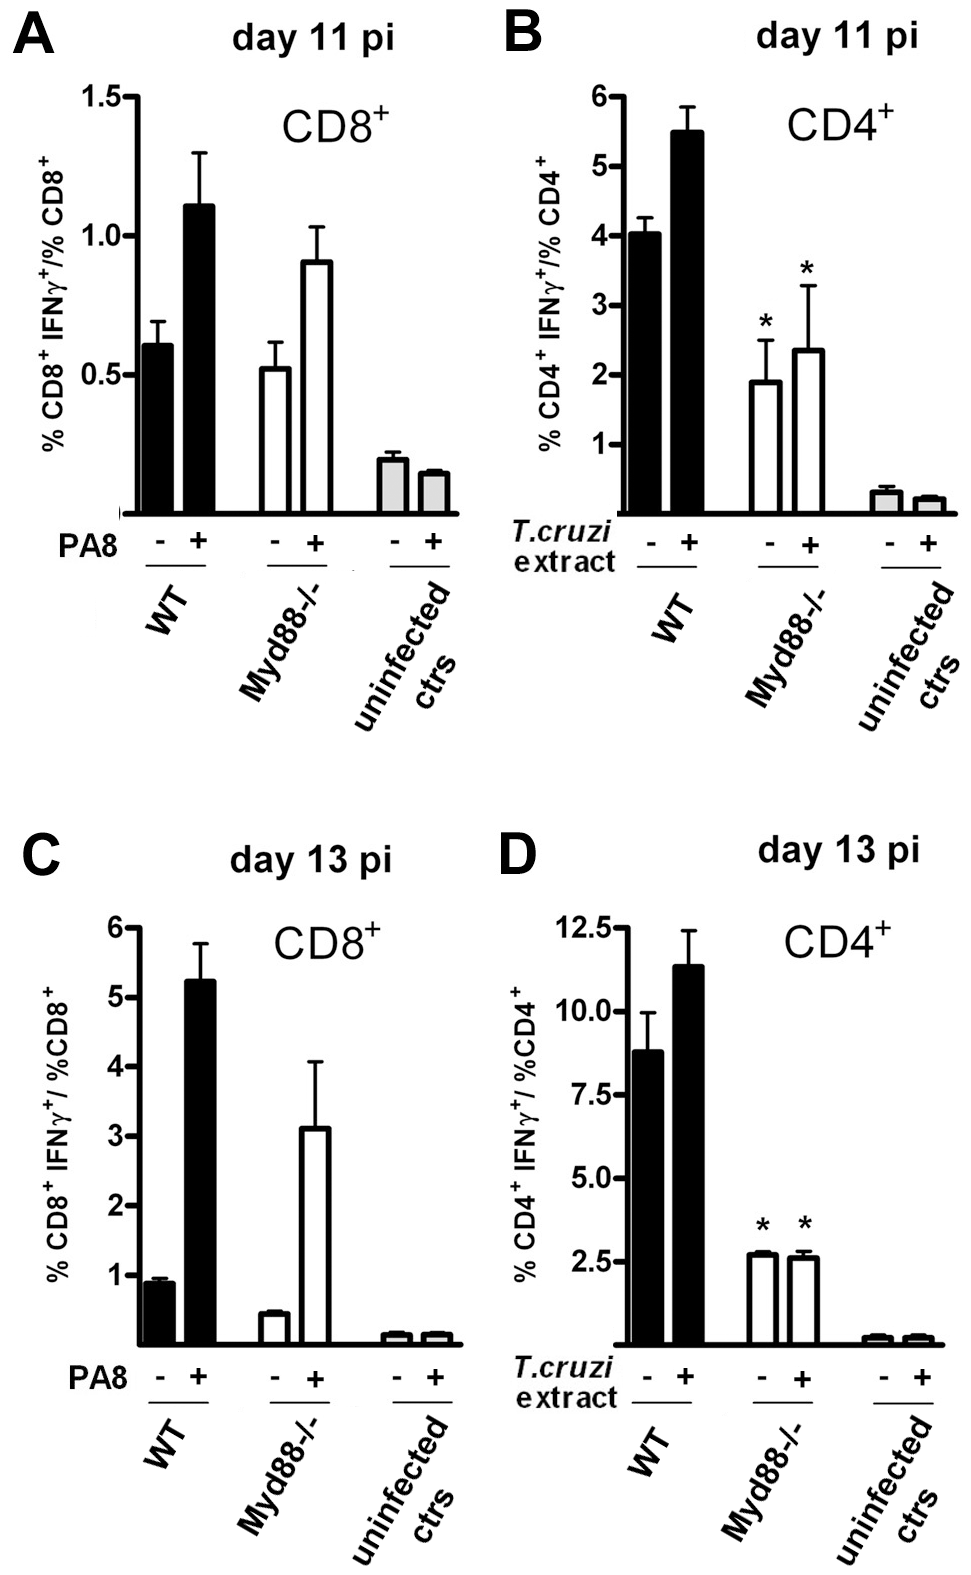 Preserved IFN-γ production by CD8<sup>+</sup> T cells but impaired IFN-γ CD4<sup>+</sup> response in <i>Myd88<sup>−/−</sup></i> mice at days 11 and 13 pi.